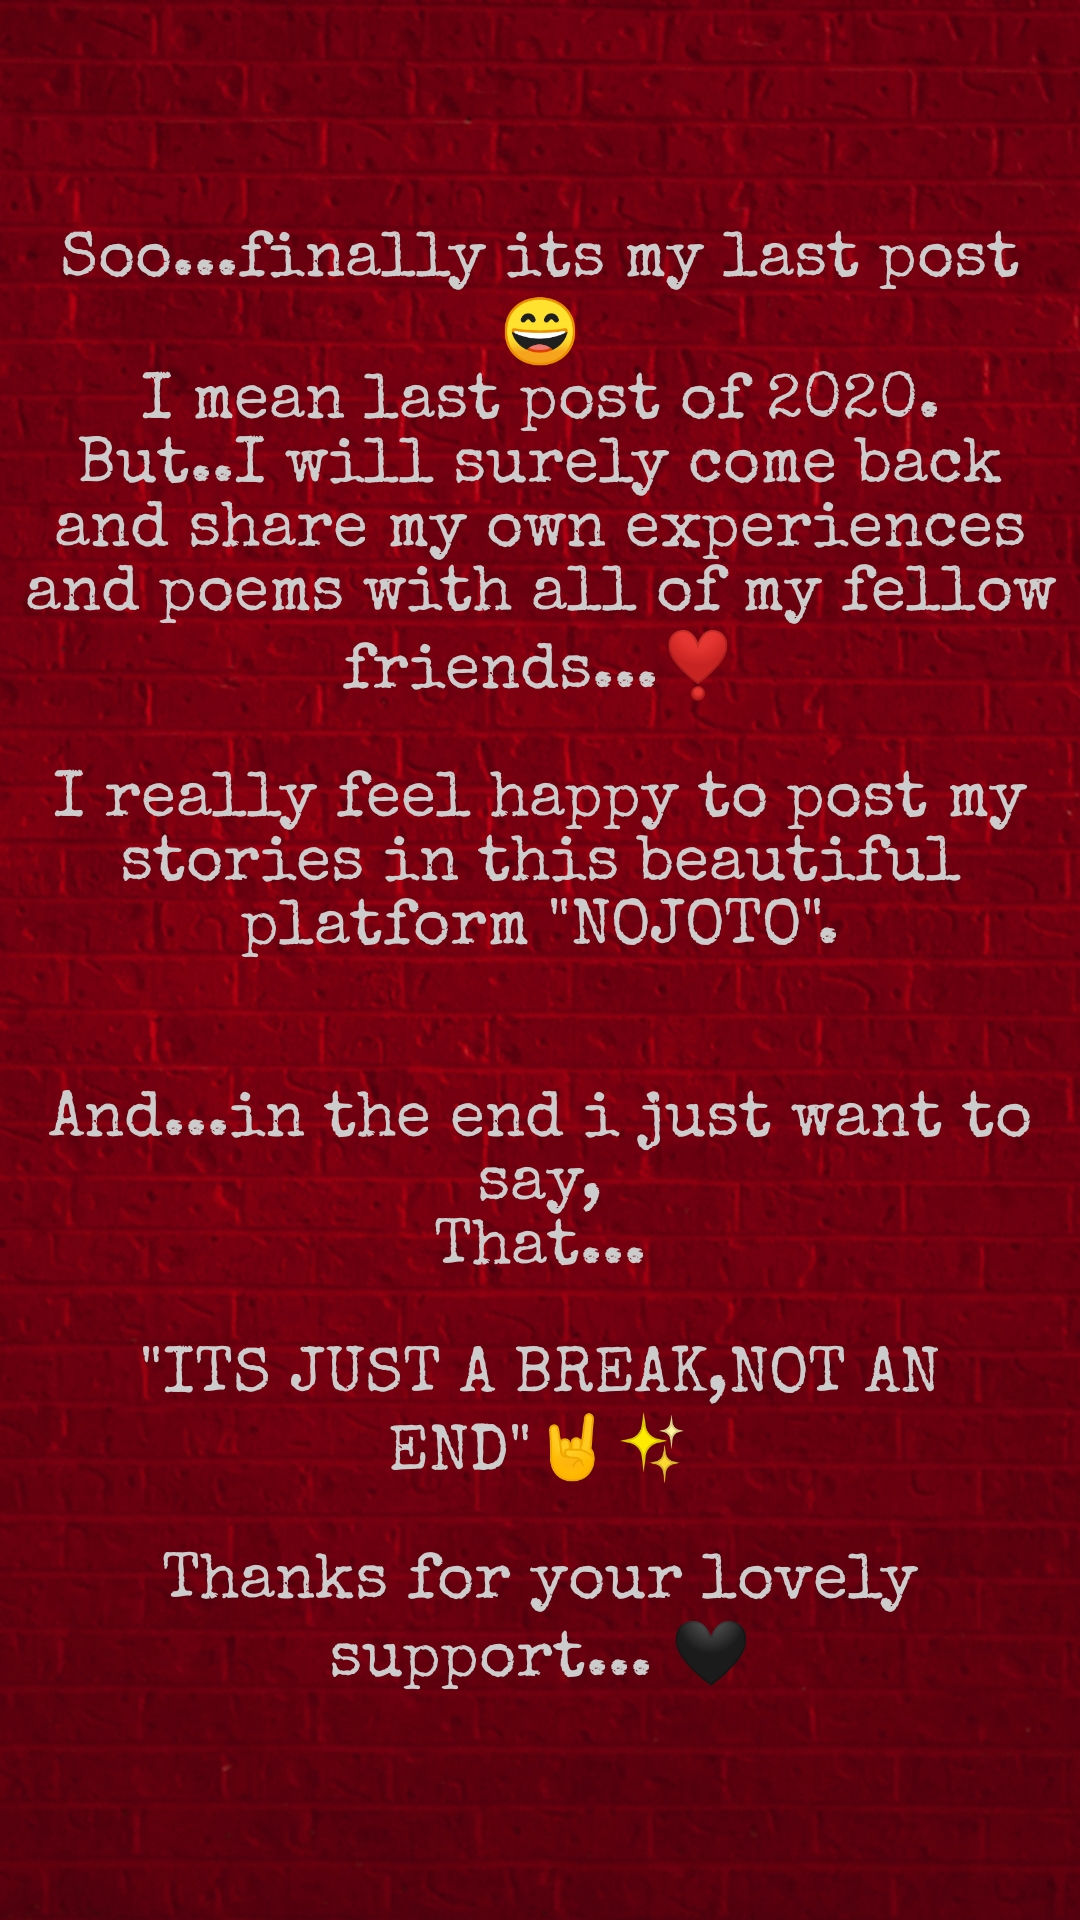 """Soo...finally its my last post😄 I mean last post of 2020. But..I will surely come back and share my own experiences and poems with all of my fellow friends...❣️  I really feel happy to post my stories in this beautiful platform """"NOJOTO"""".   And...in the end i just want to say, That...  """"ITS JUST A BREAK,NOT AN END""""🤘✨  Thanks for your lovely support... 🖤"""